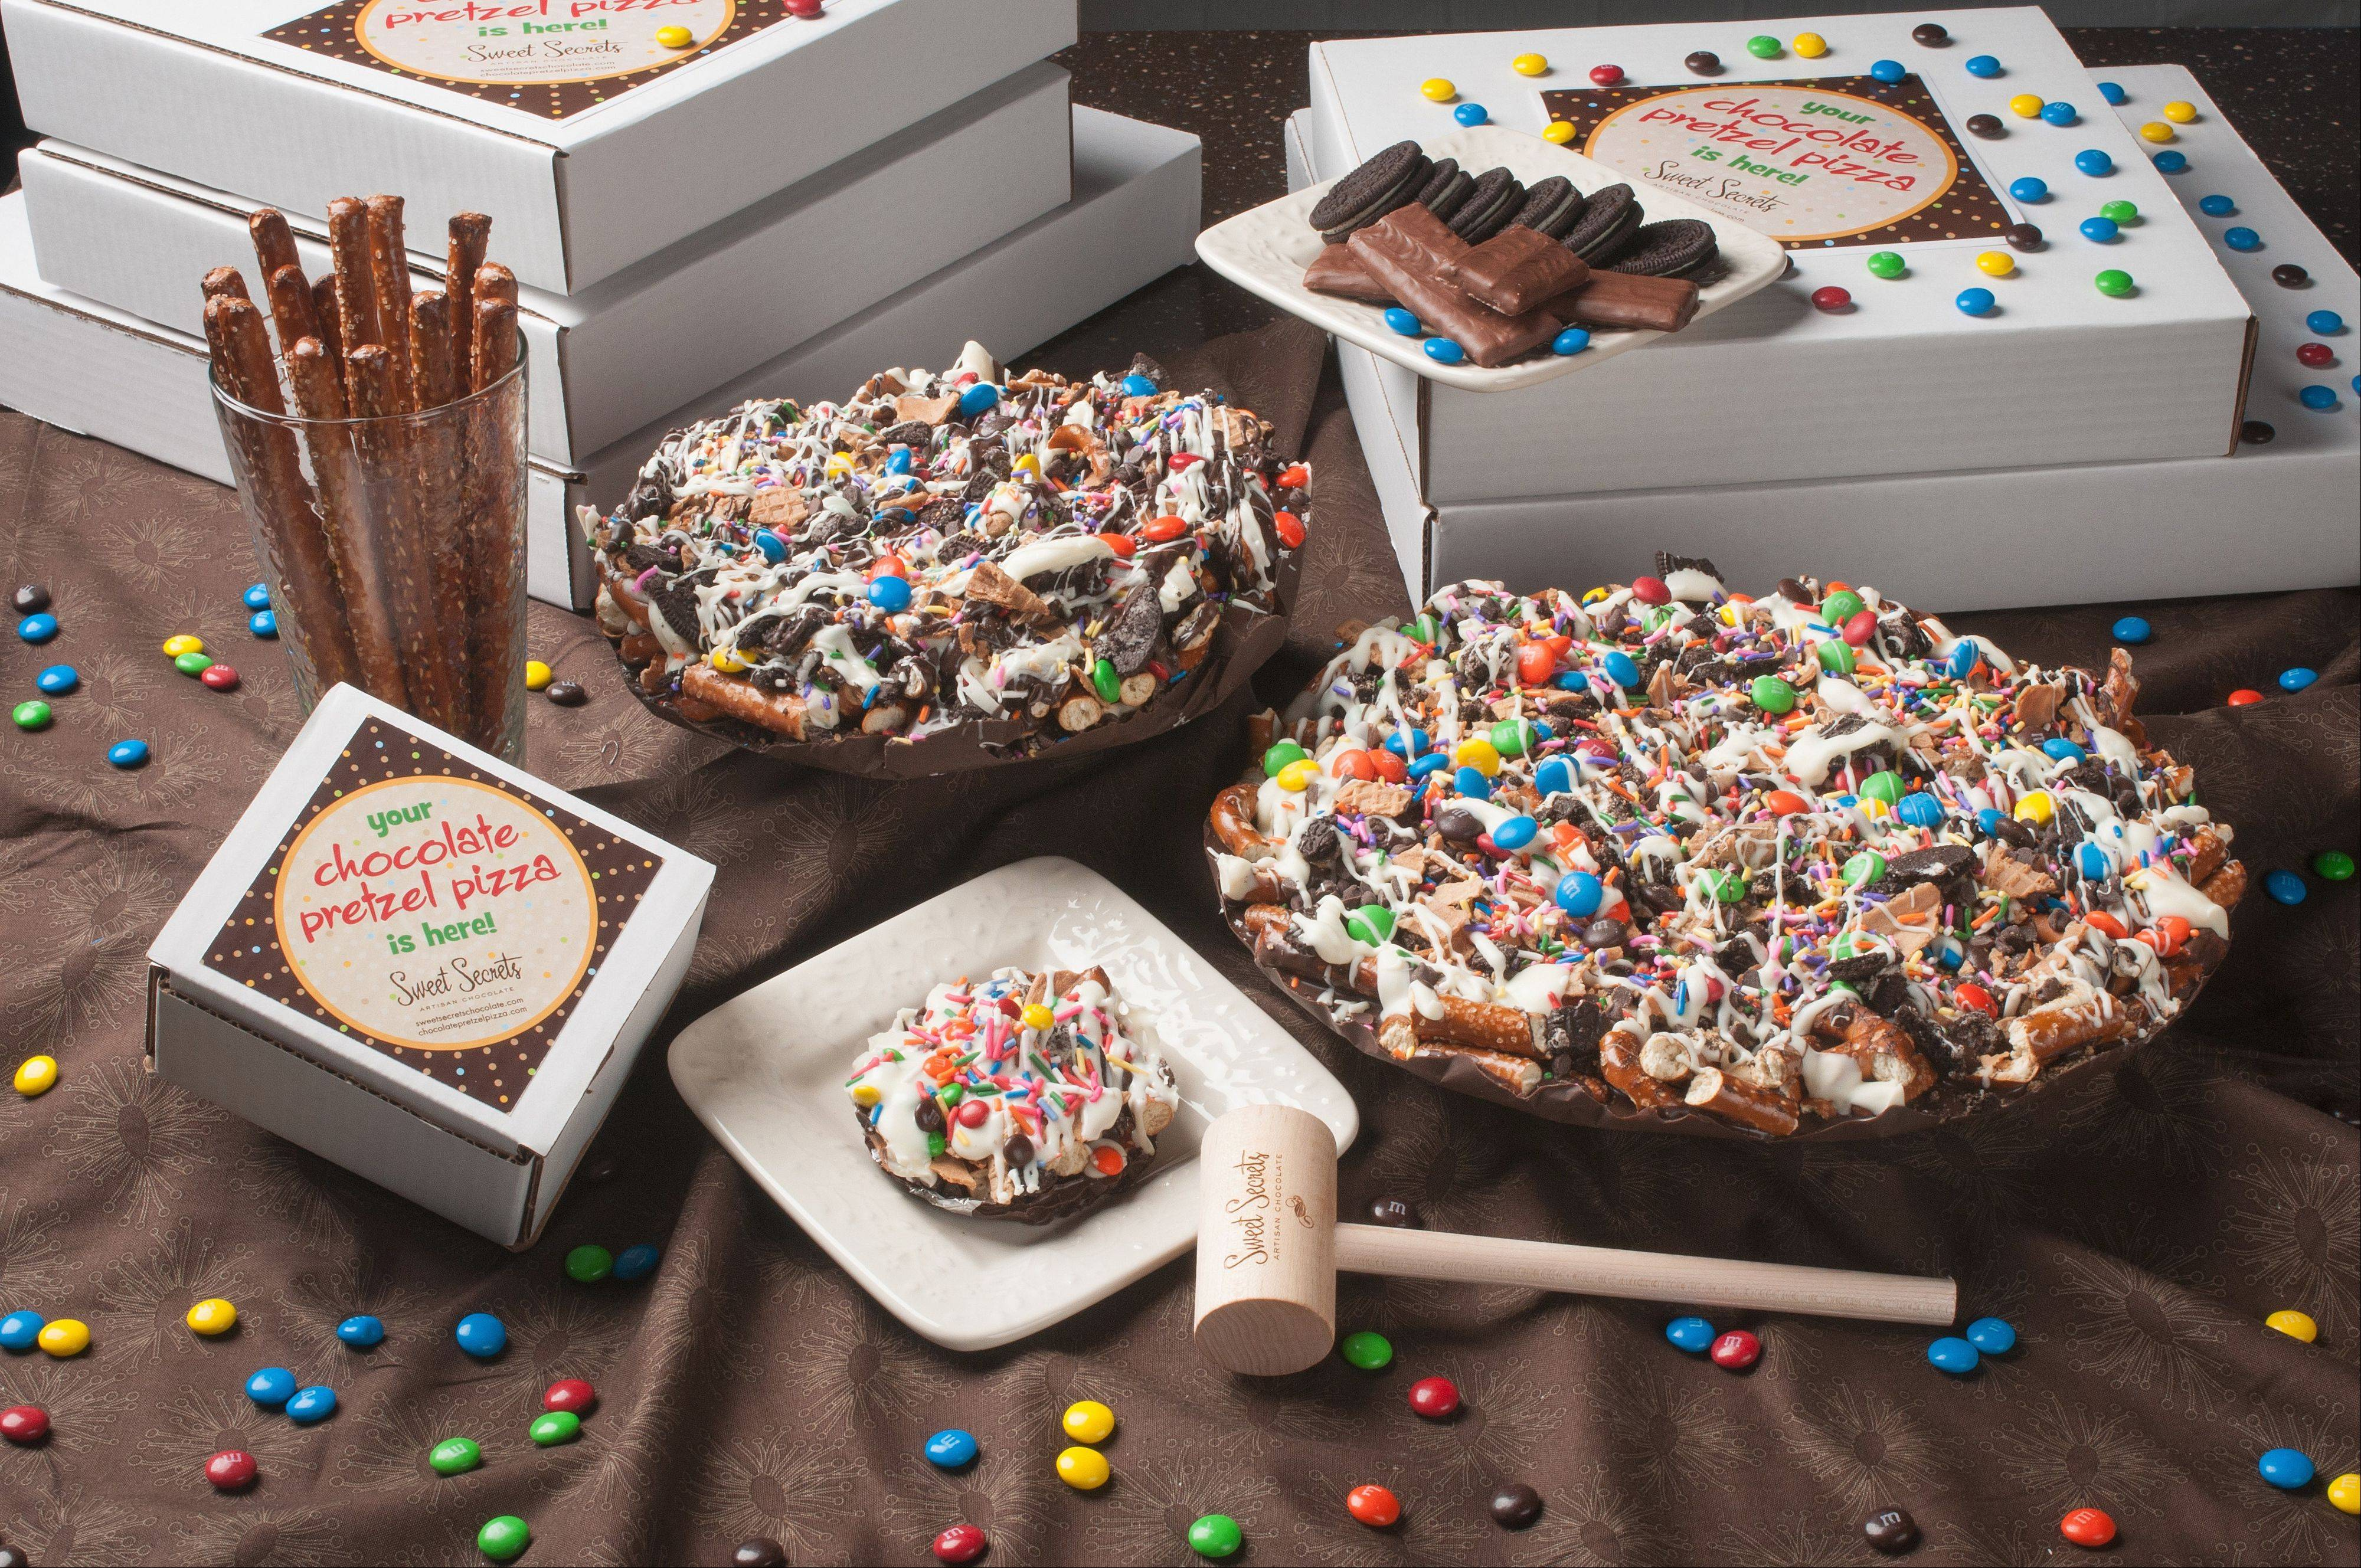 Chocolate Pretzel Pizzas from Wheaton's Sweet Secrets Chocolate are a finalist for Best New Product at the Chicago Fine Chocolate and Dessert Show at Navy Pier.